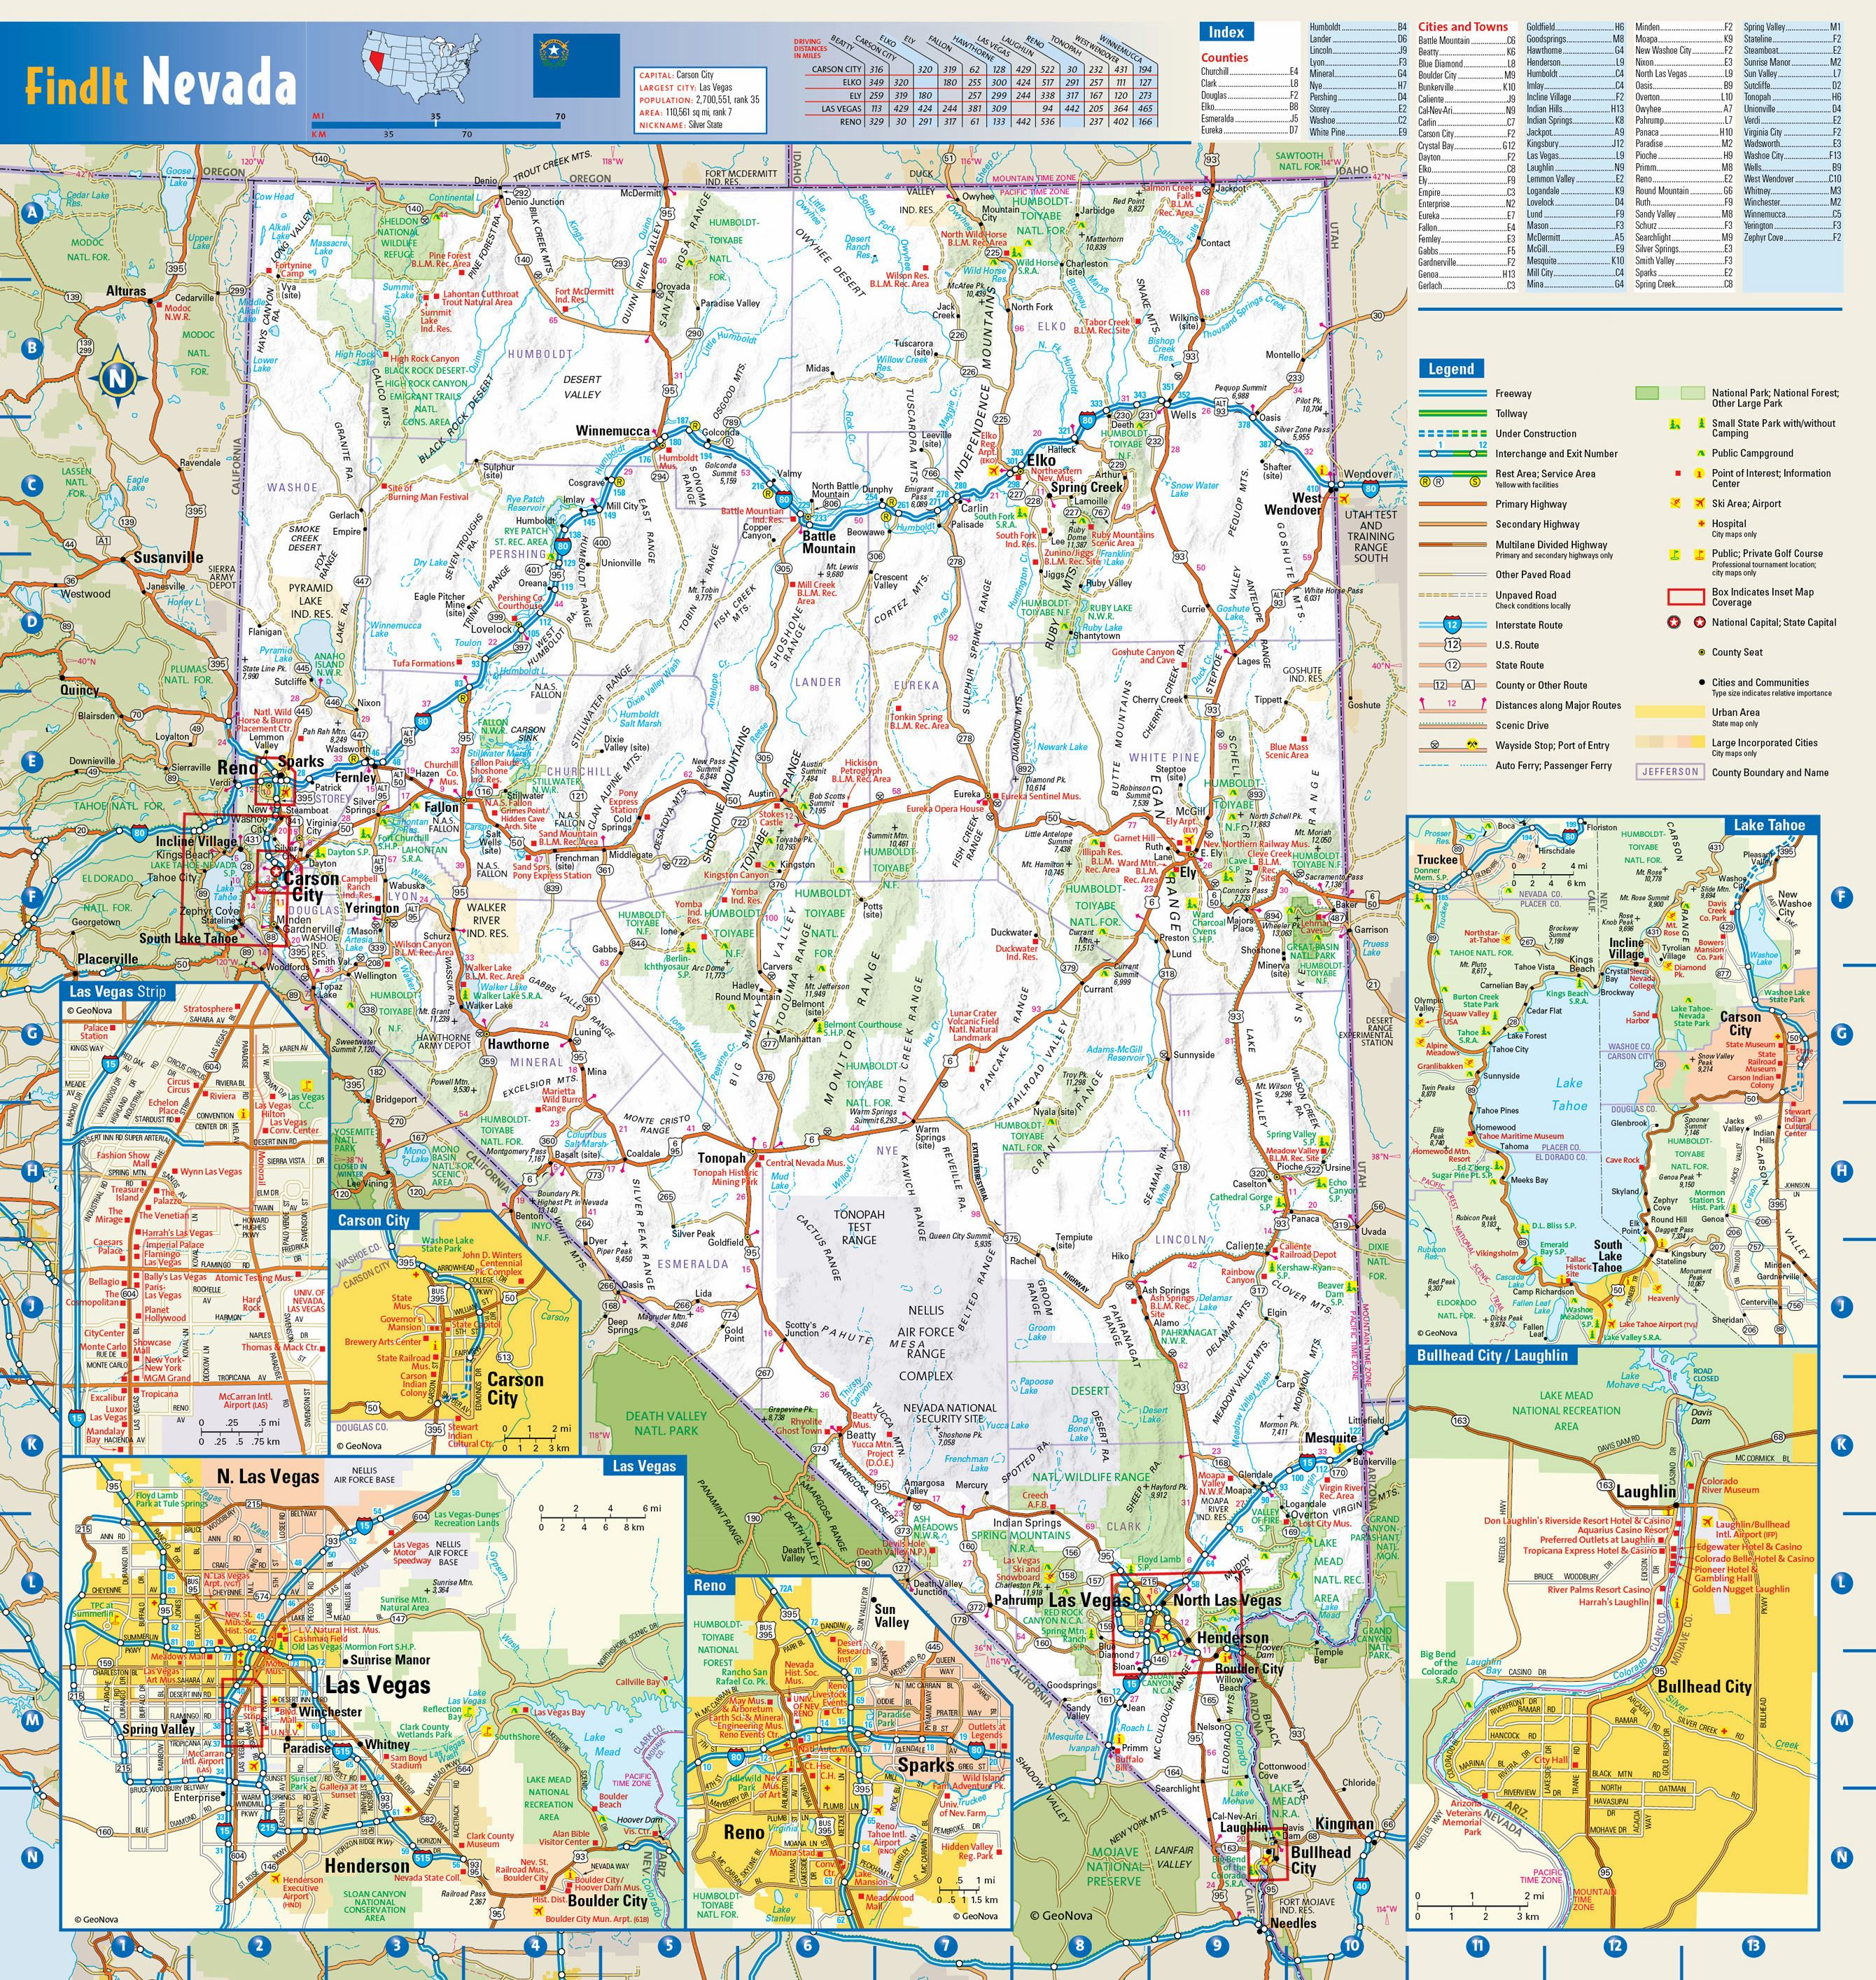 Nevada Road Map Large Nevada Maps for Free Download and Print | High Resolution